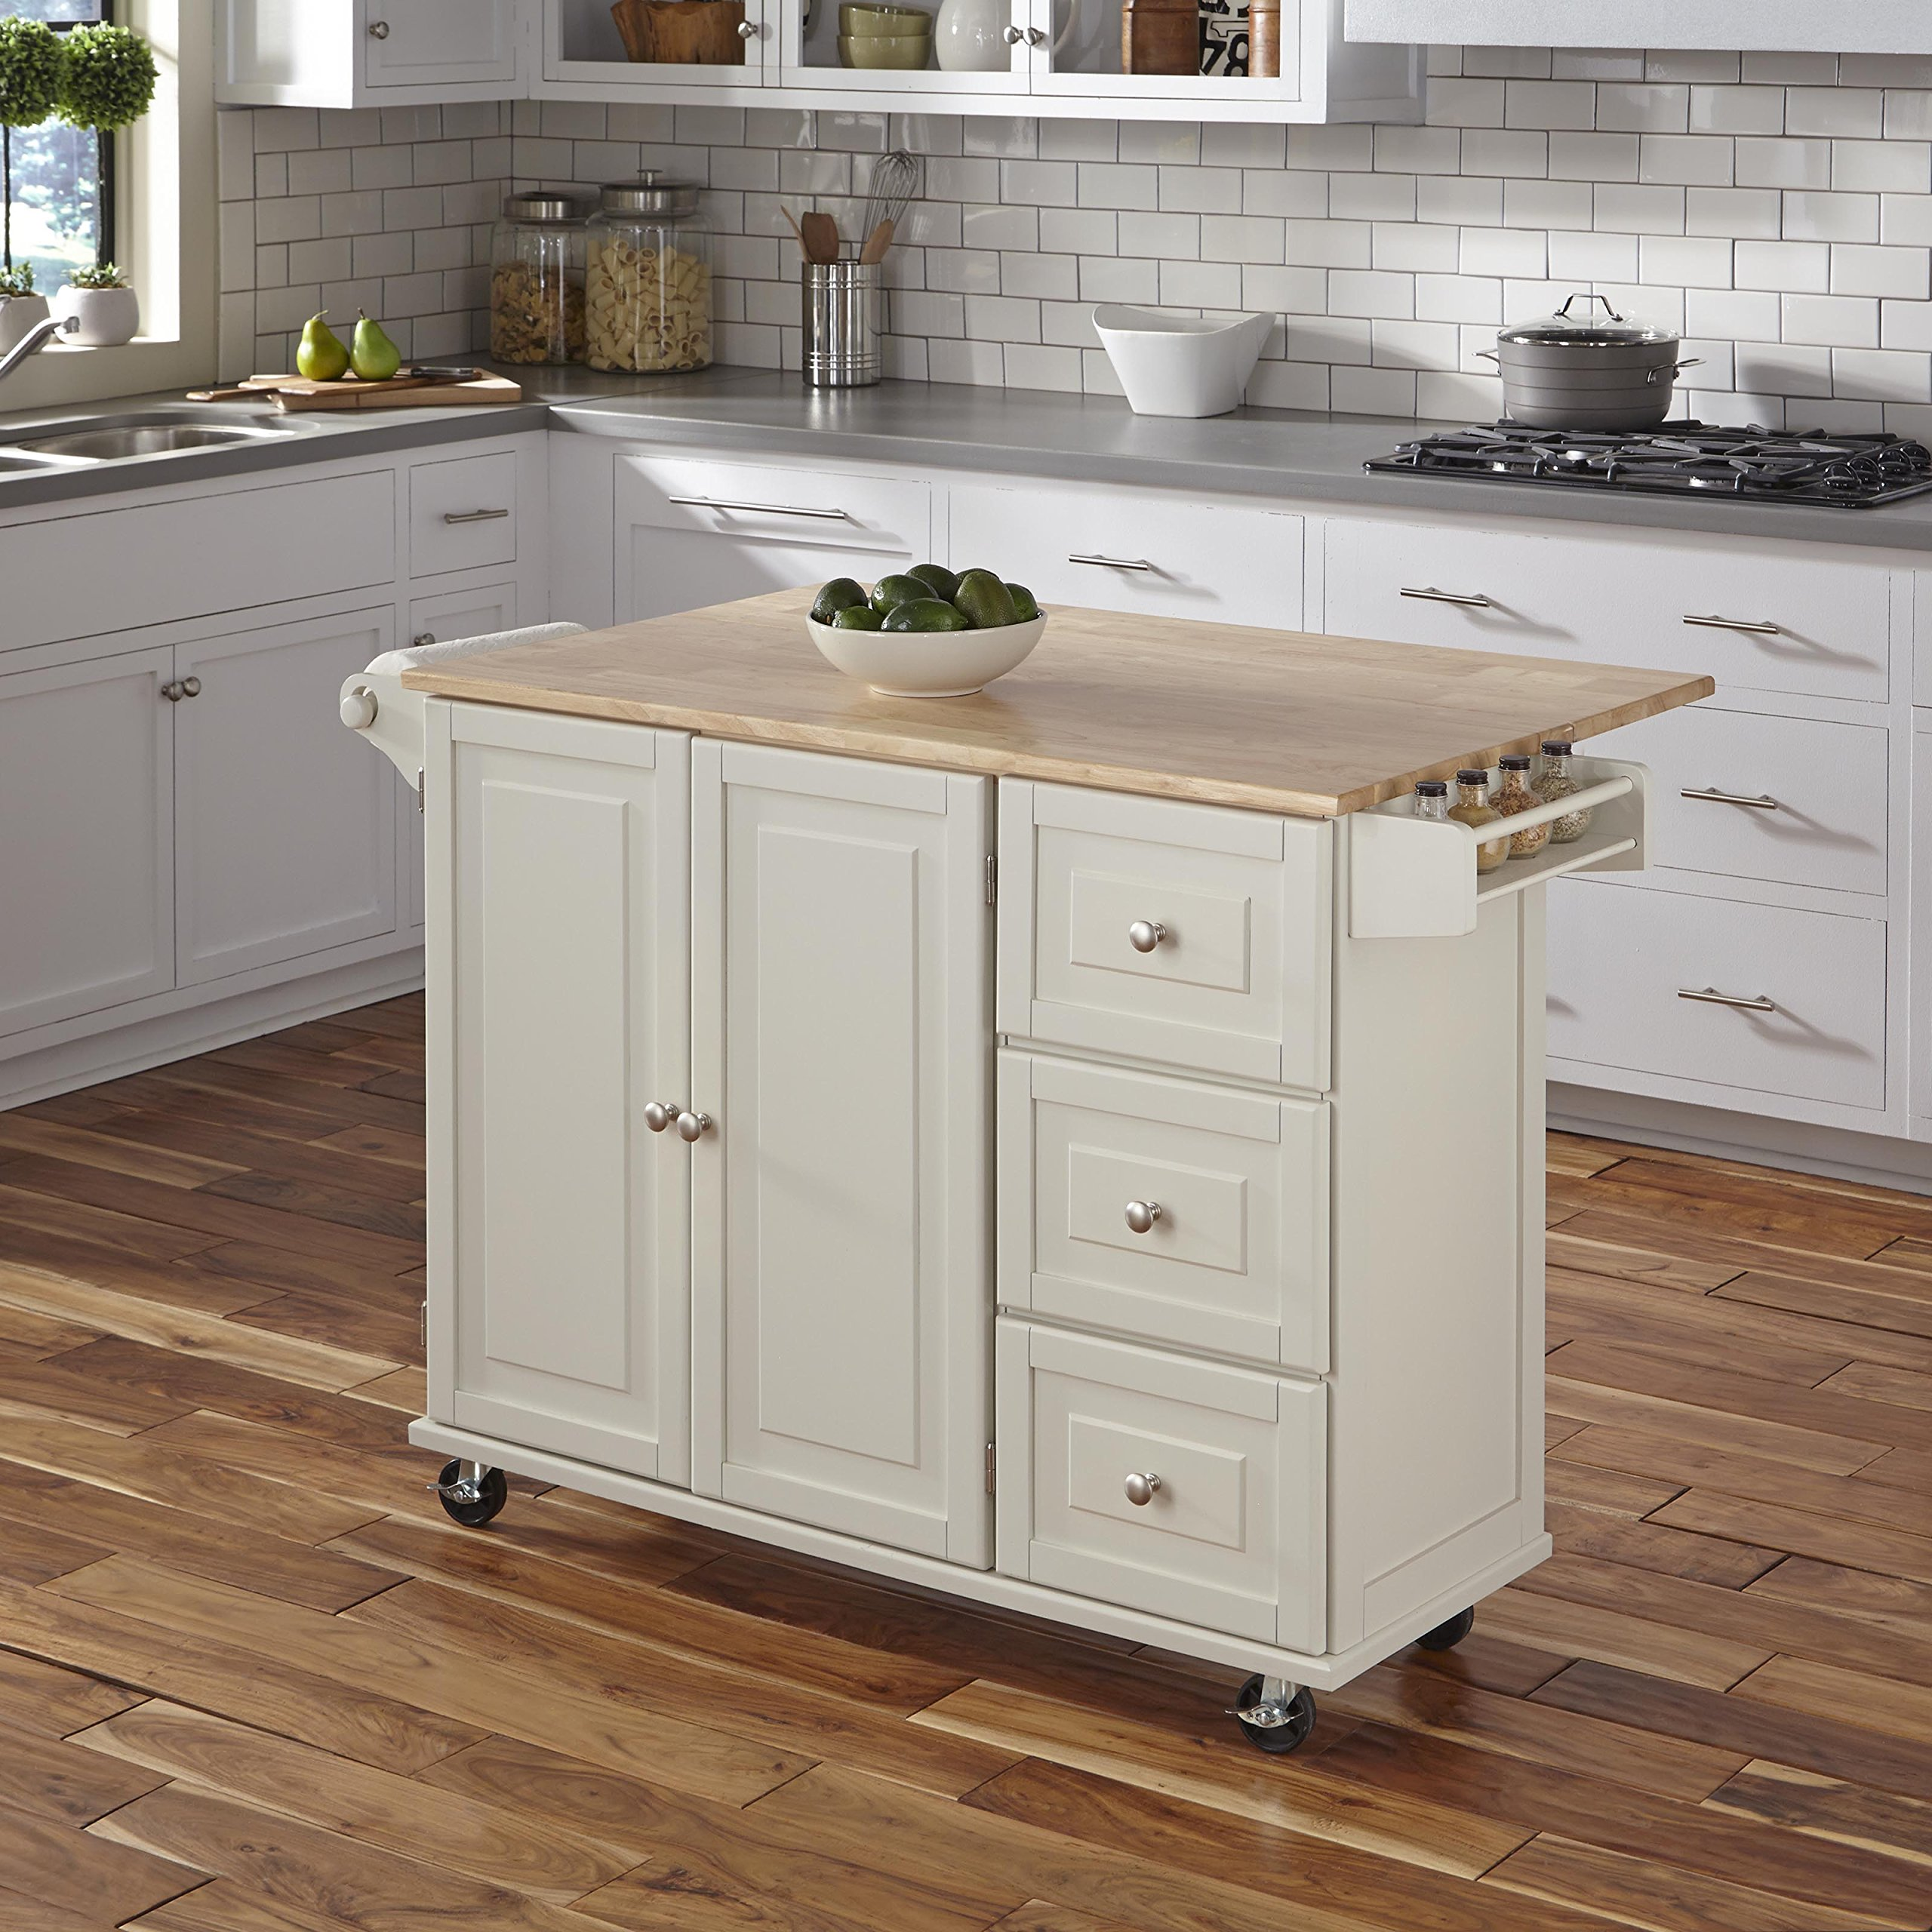 Home Styles 4511-95 Liberty Kitchen Cart with Wood Top, White by Home Styles (Image #6)